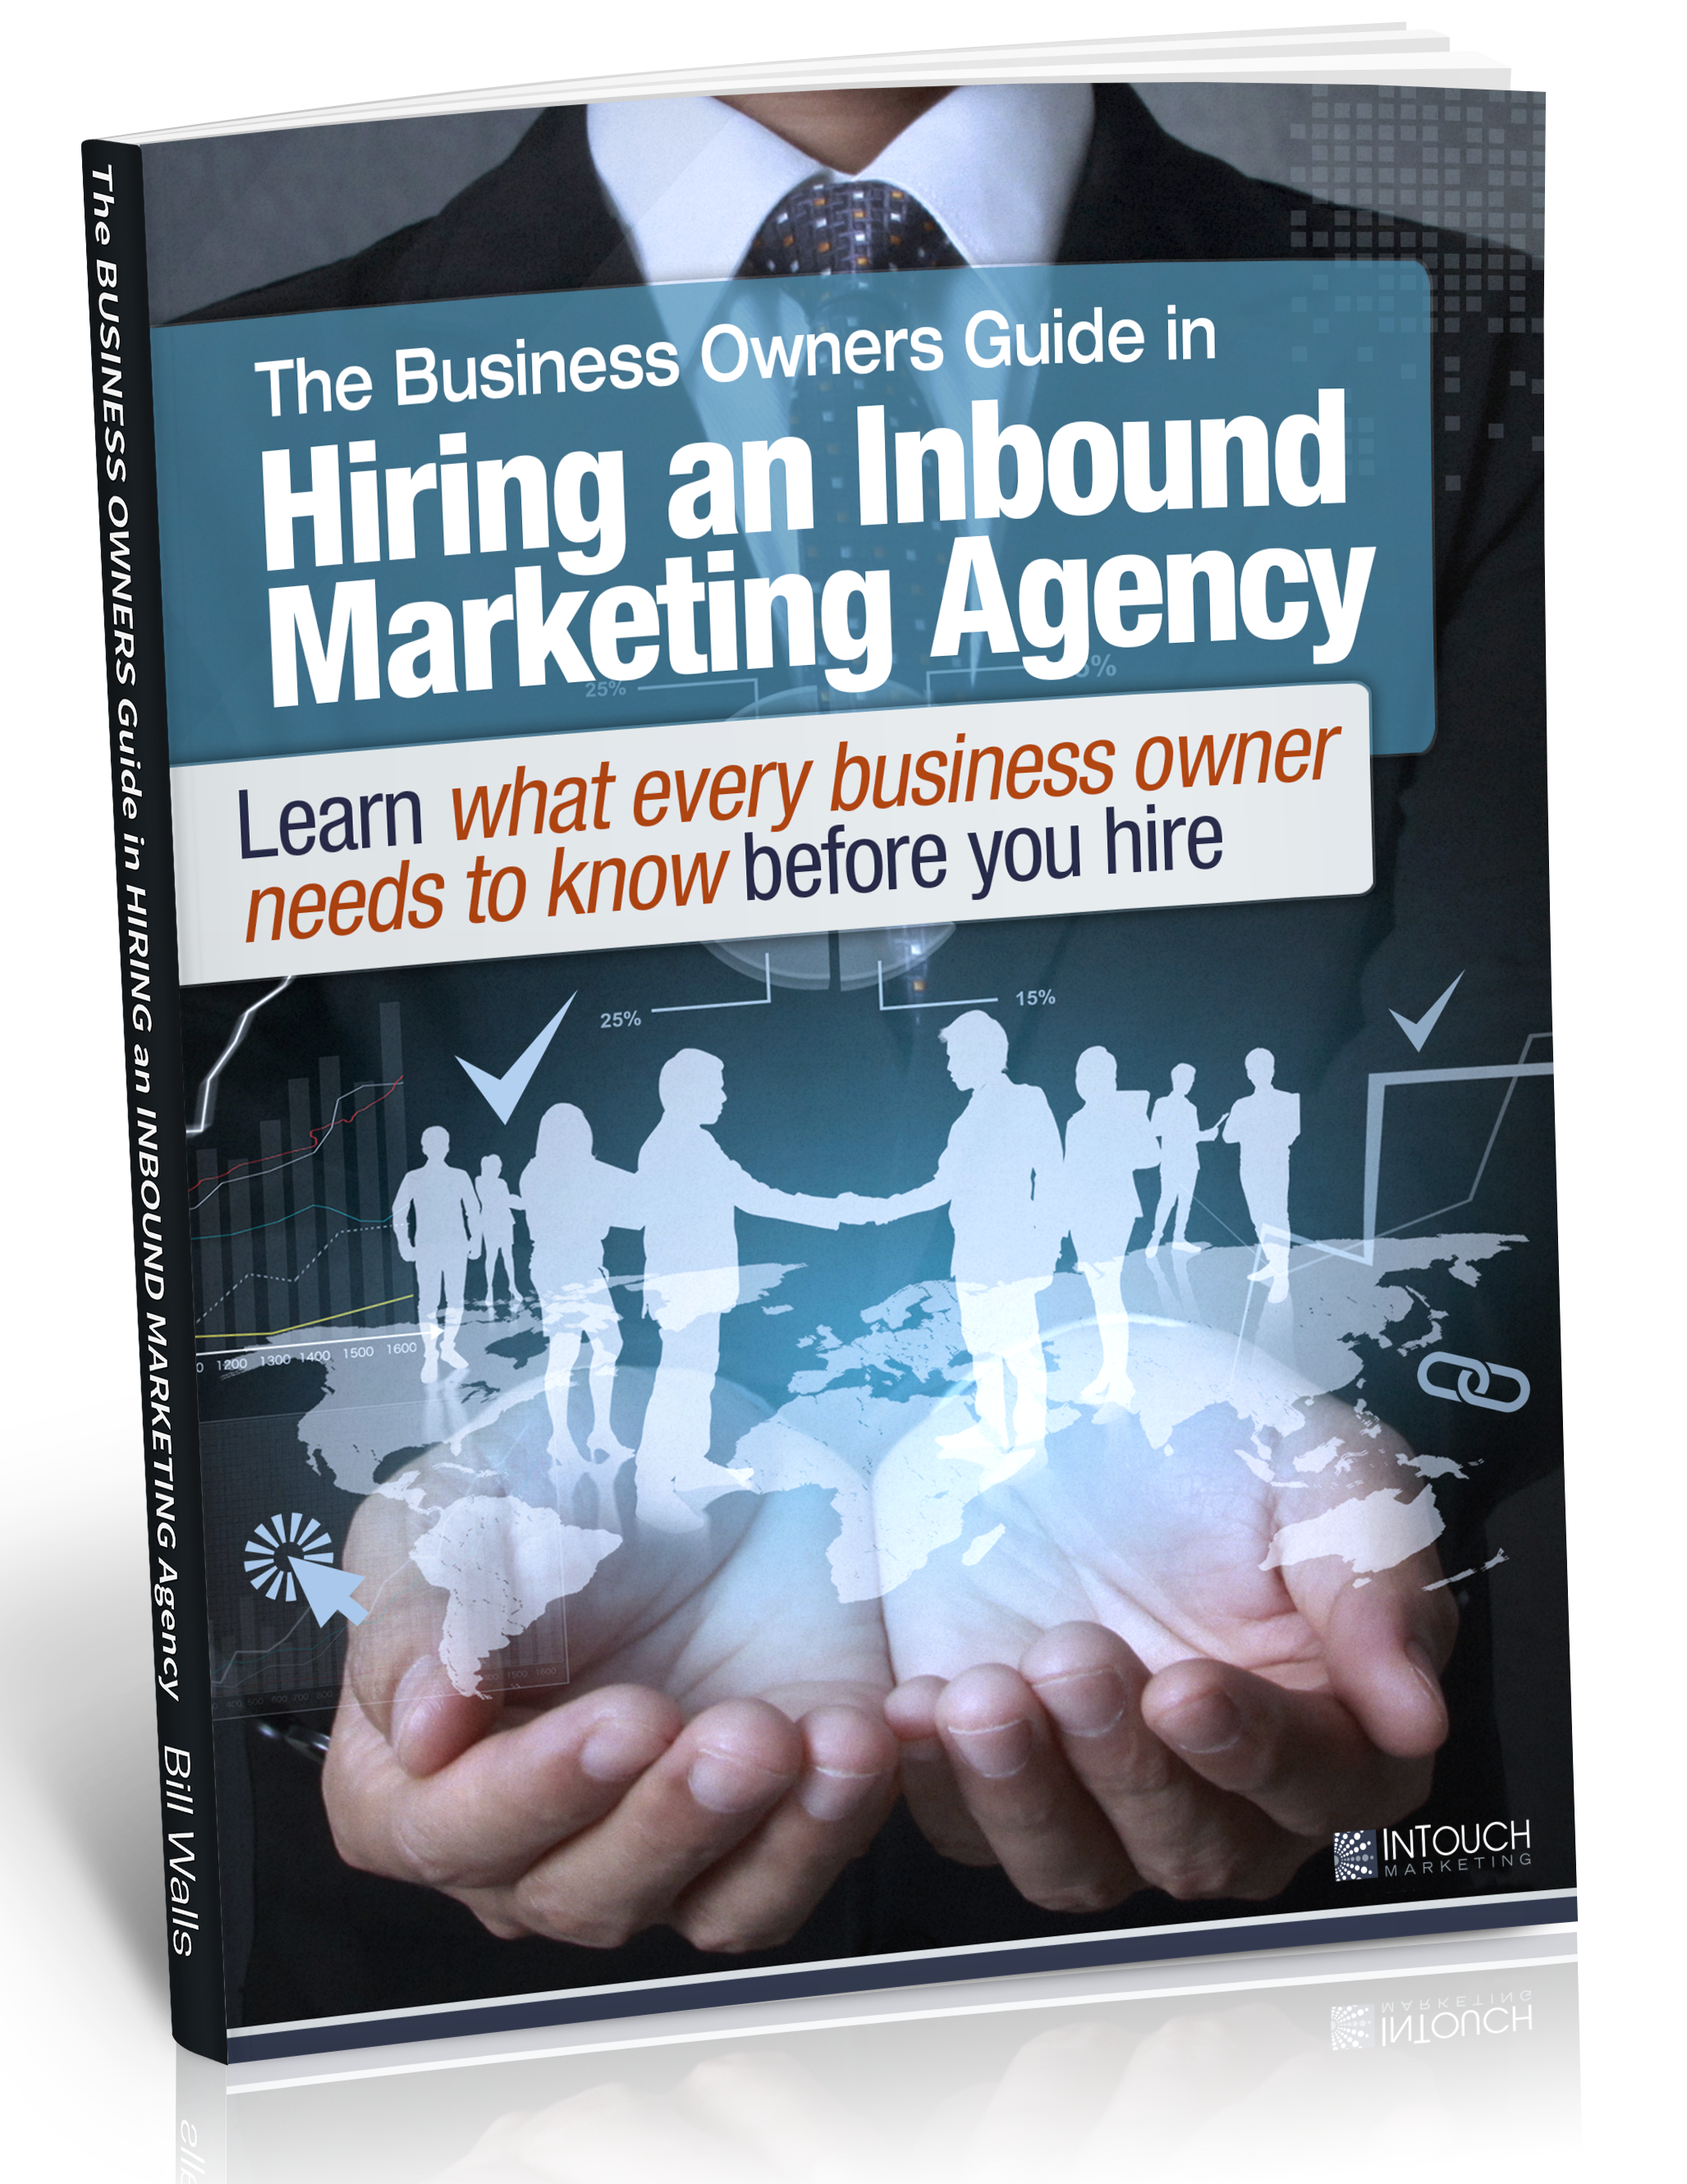 The-Business-Owners-Guide-in-Hiring-an-Inbound-Marketing-Agency